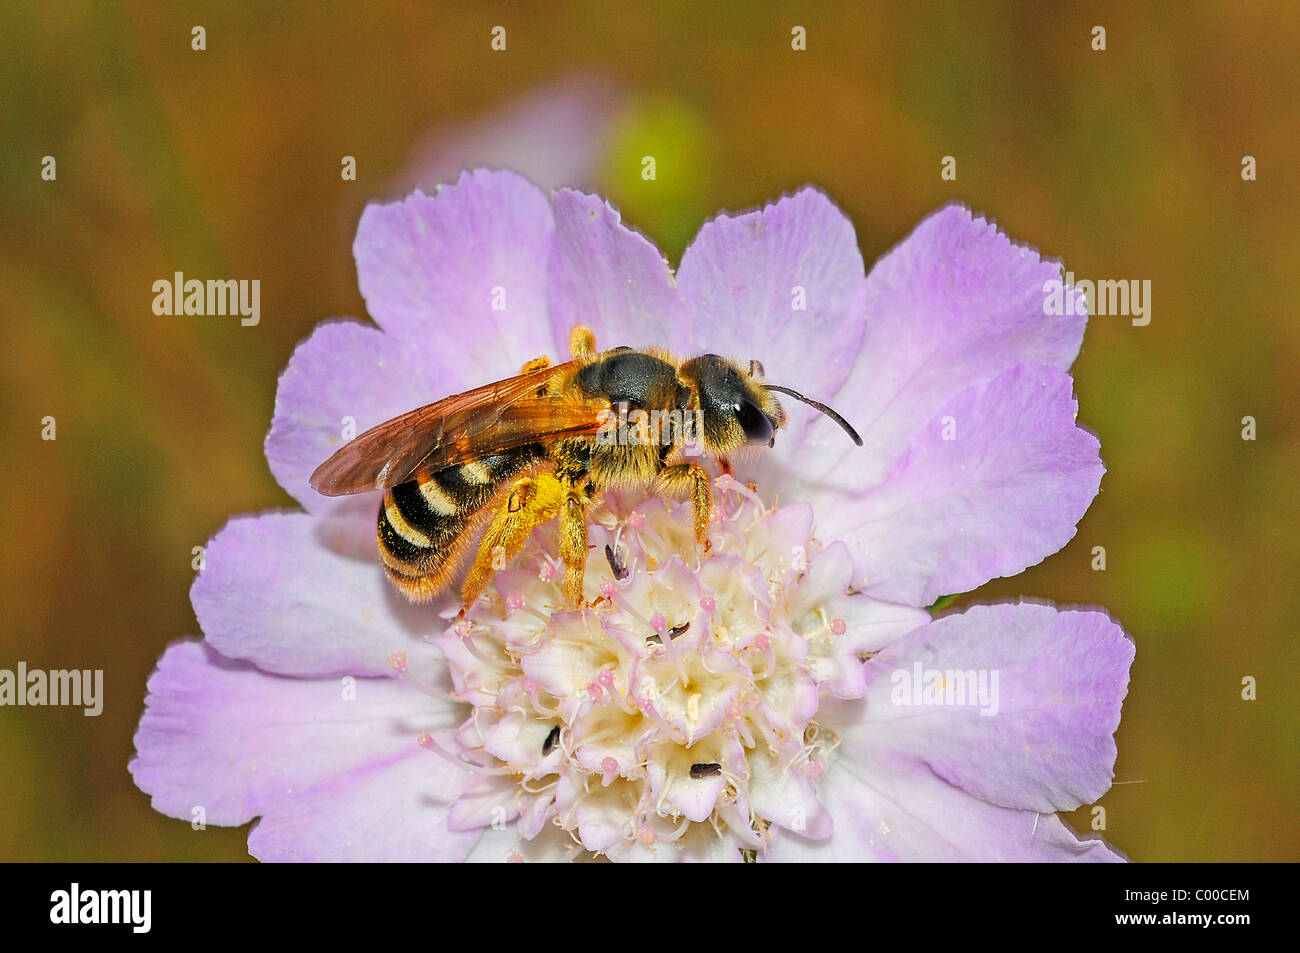 sweat bee on blossom - Stock Image